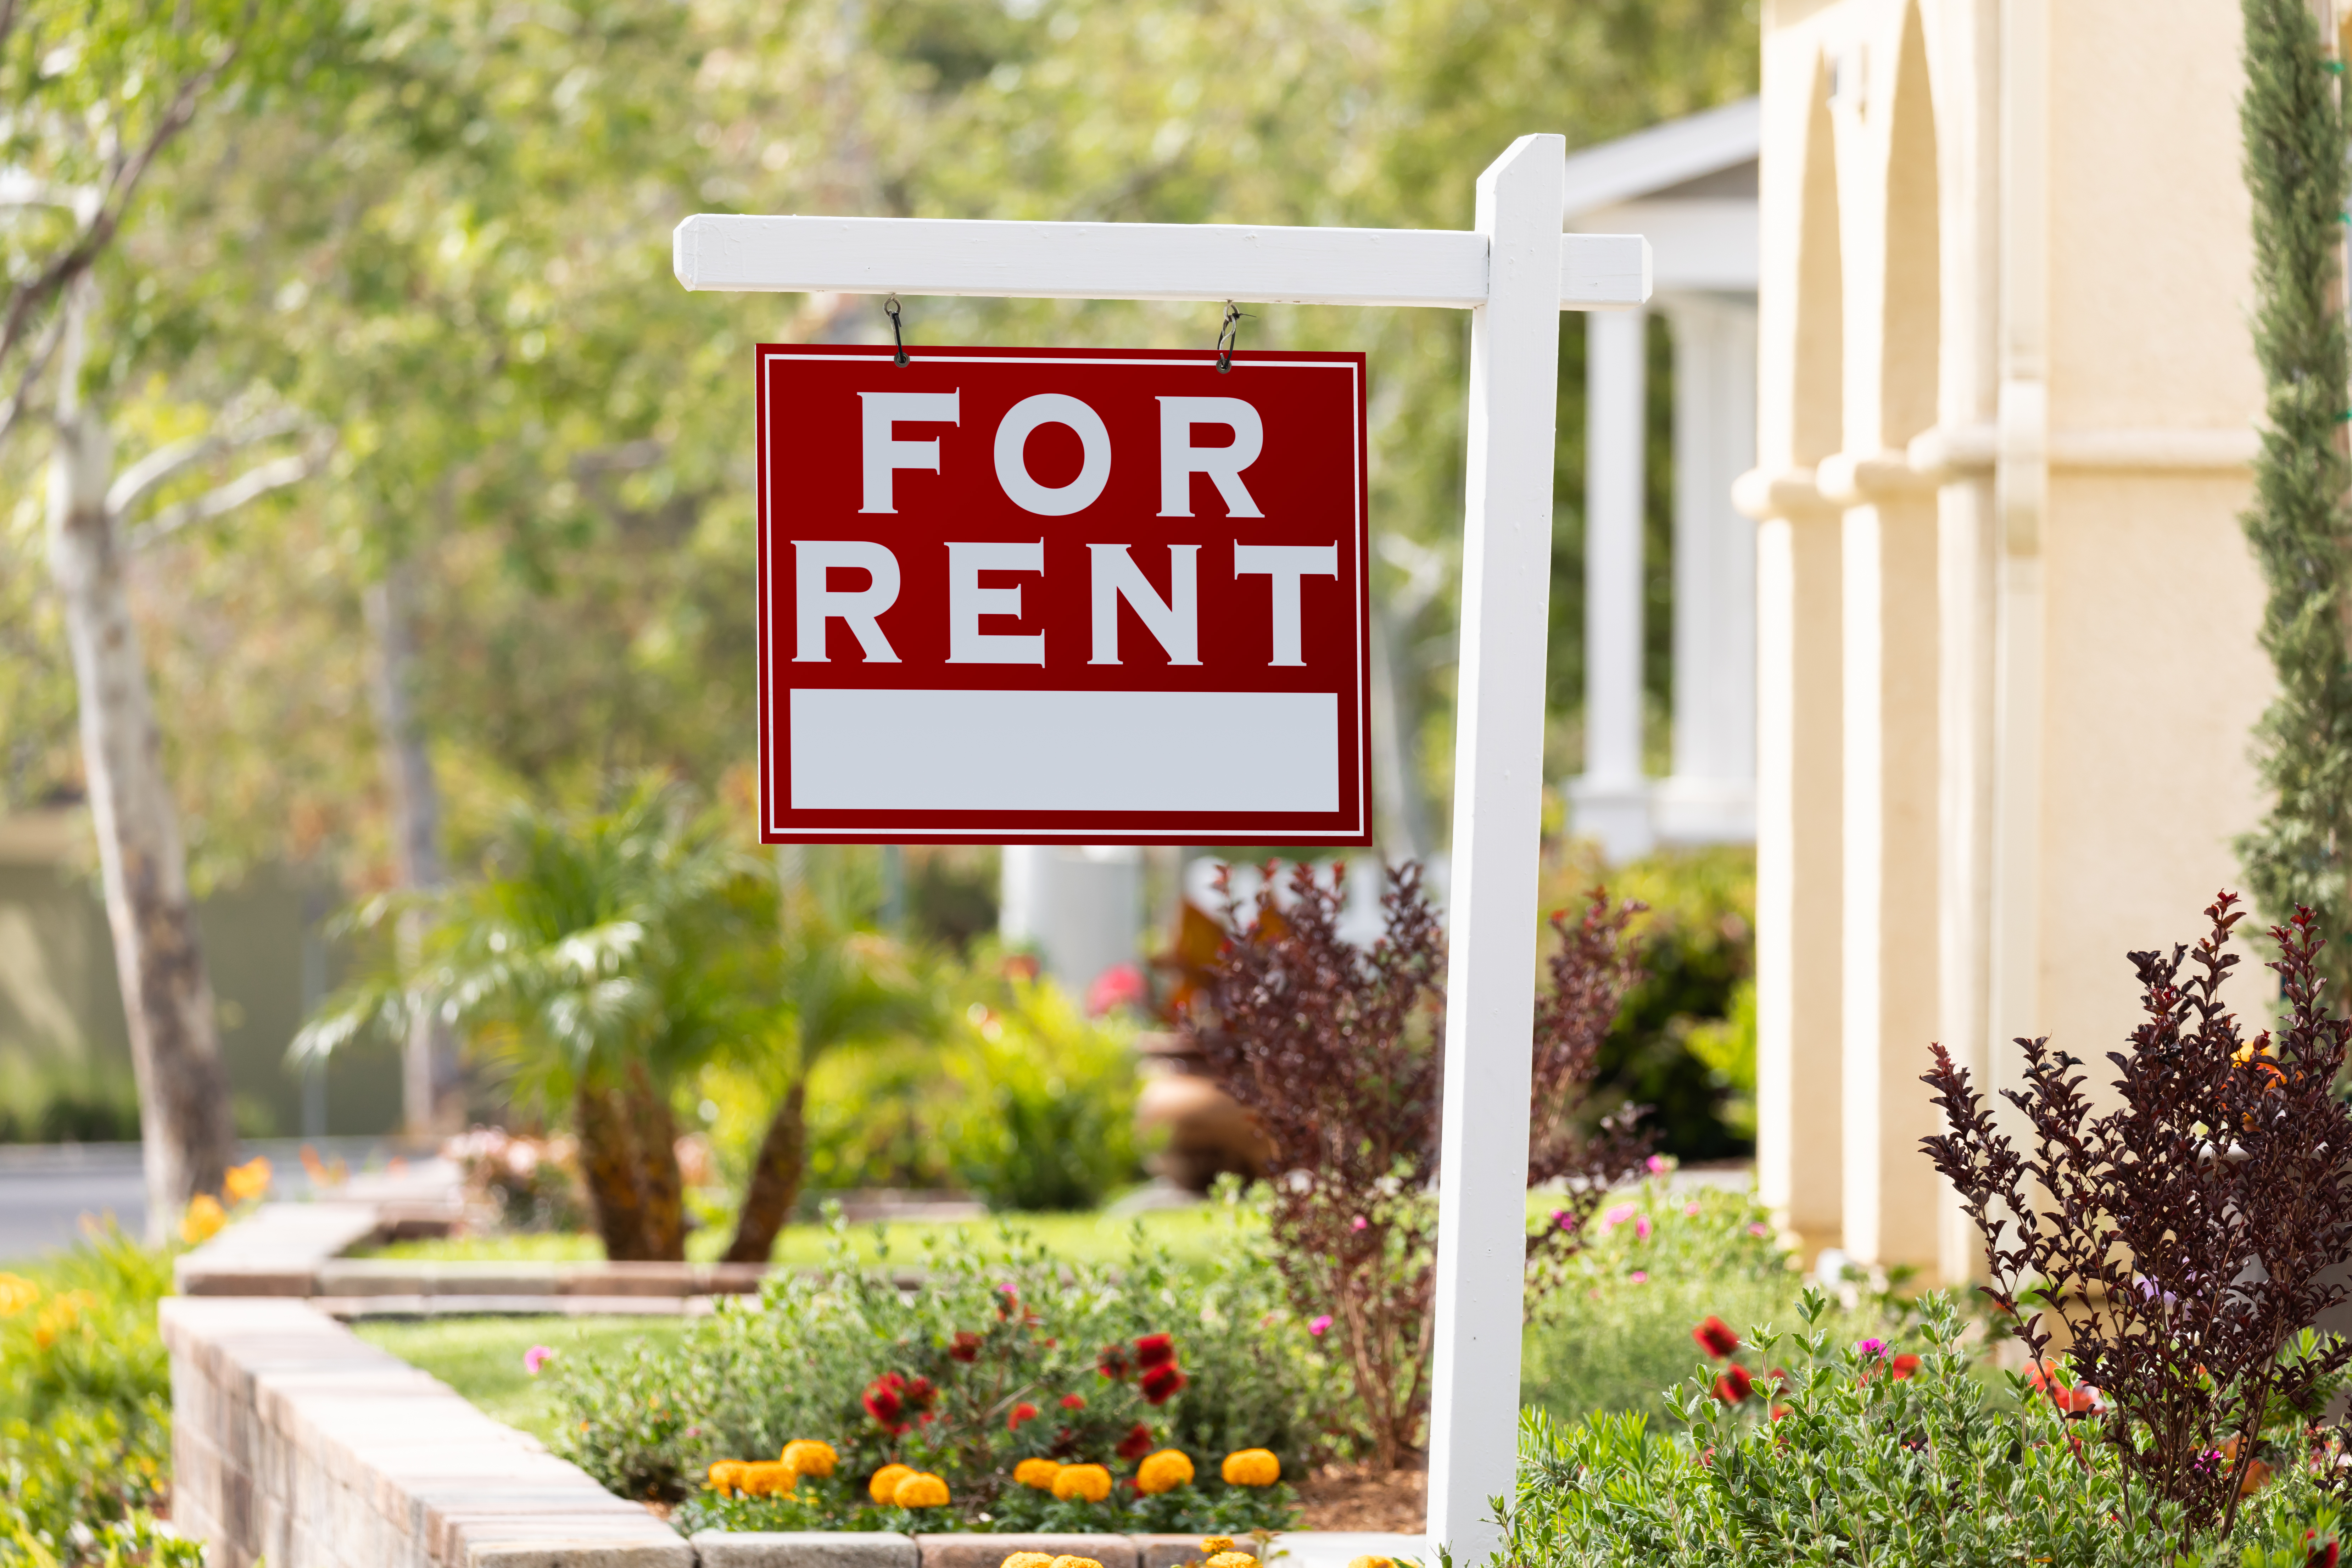 How To Find A House For Rent For People With A Low Income